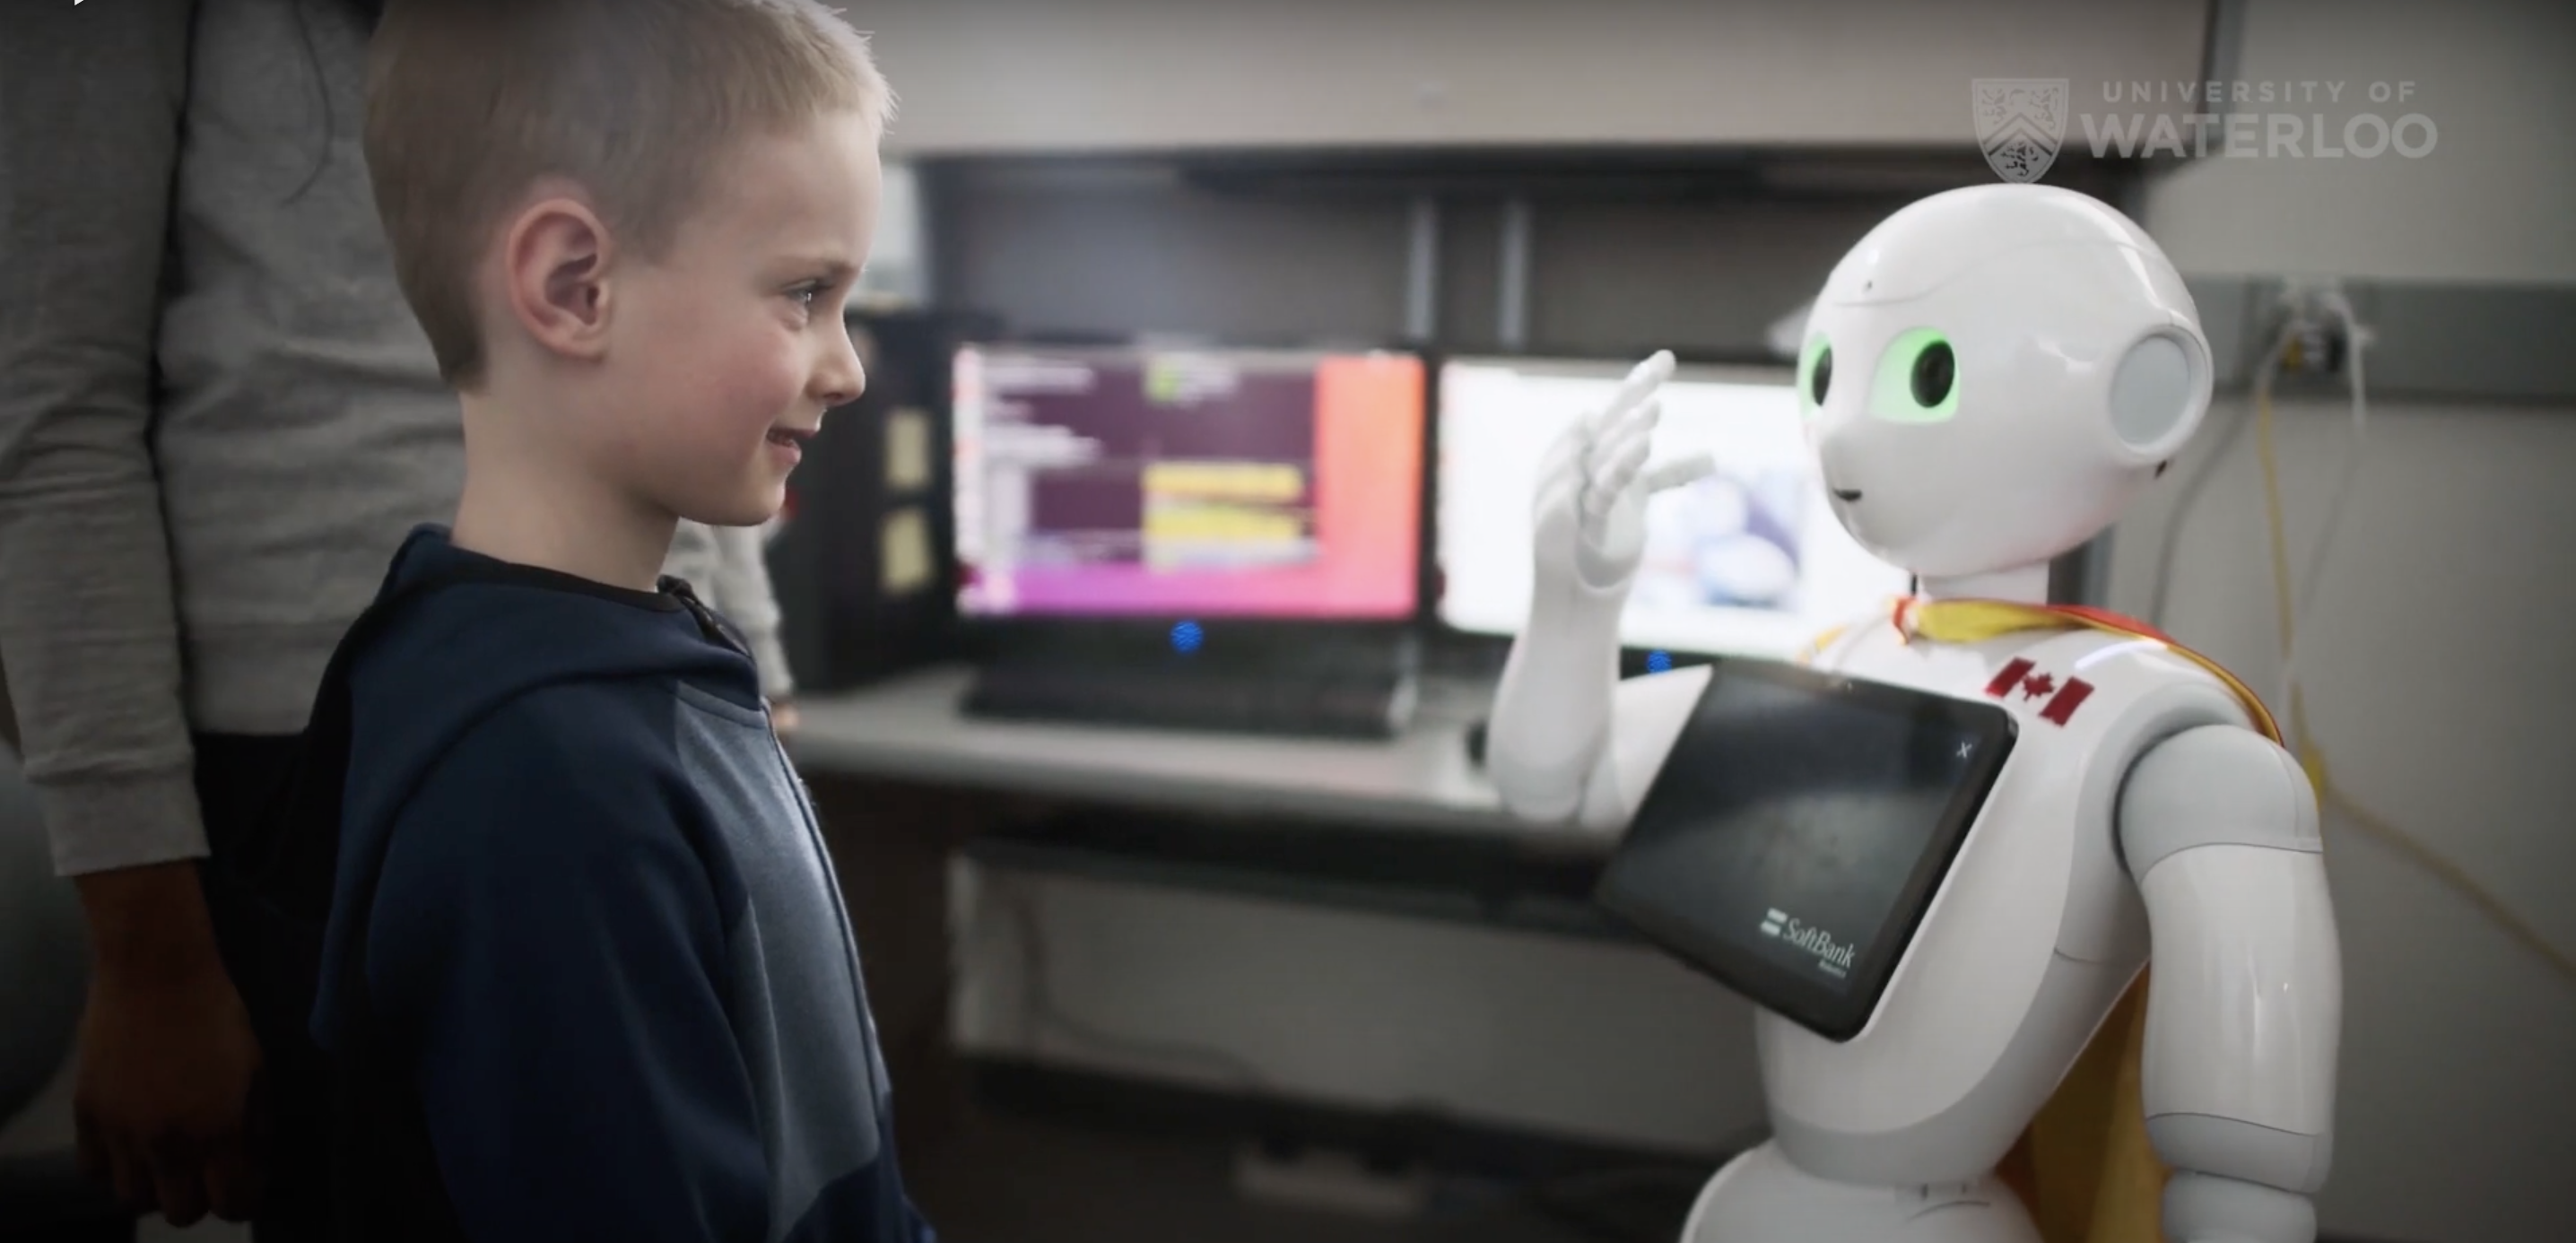 The Learning Disabilities Society Partners with the University of Waterloo to Study the Benefits of Social Robot Interaction with Children with Learning Disabilities